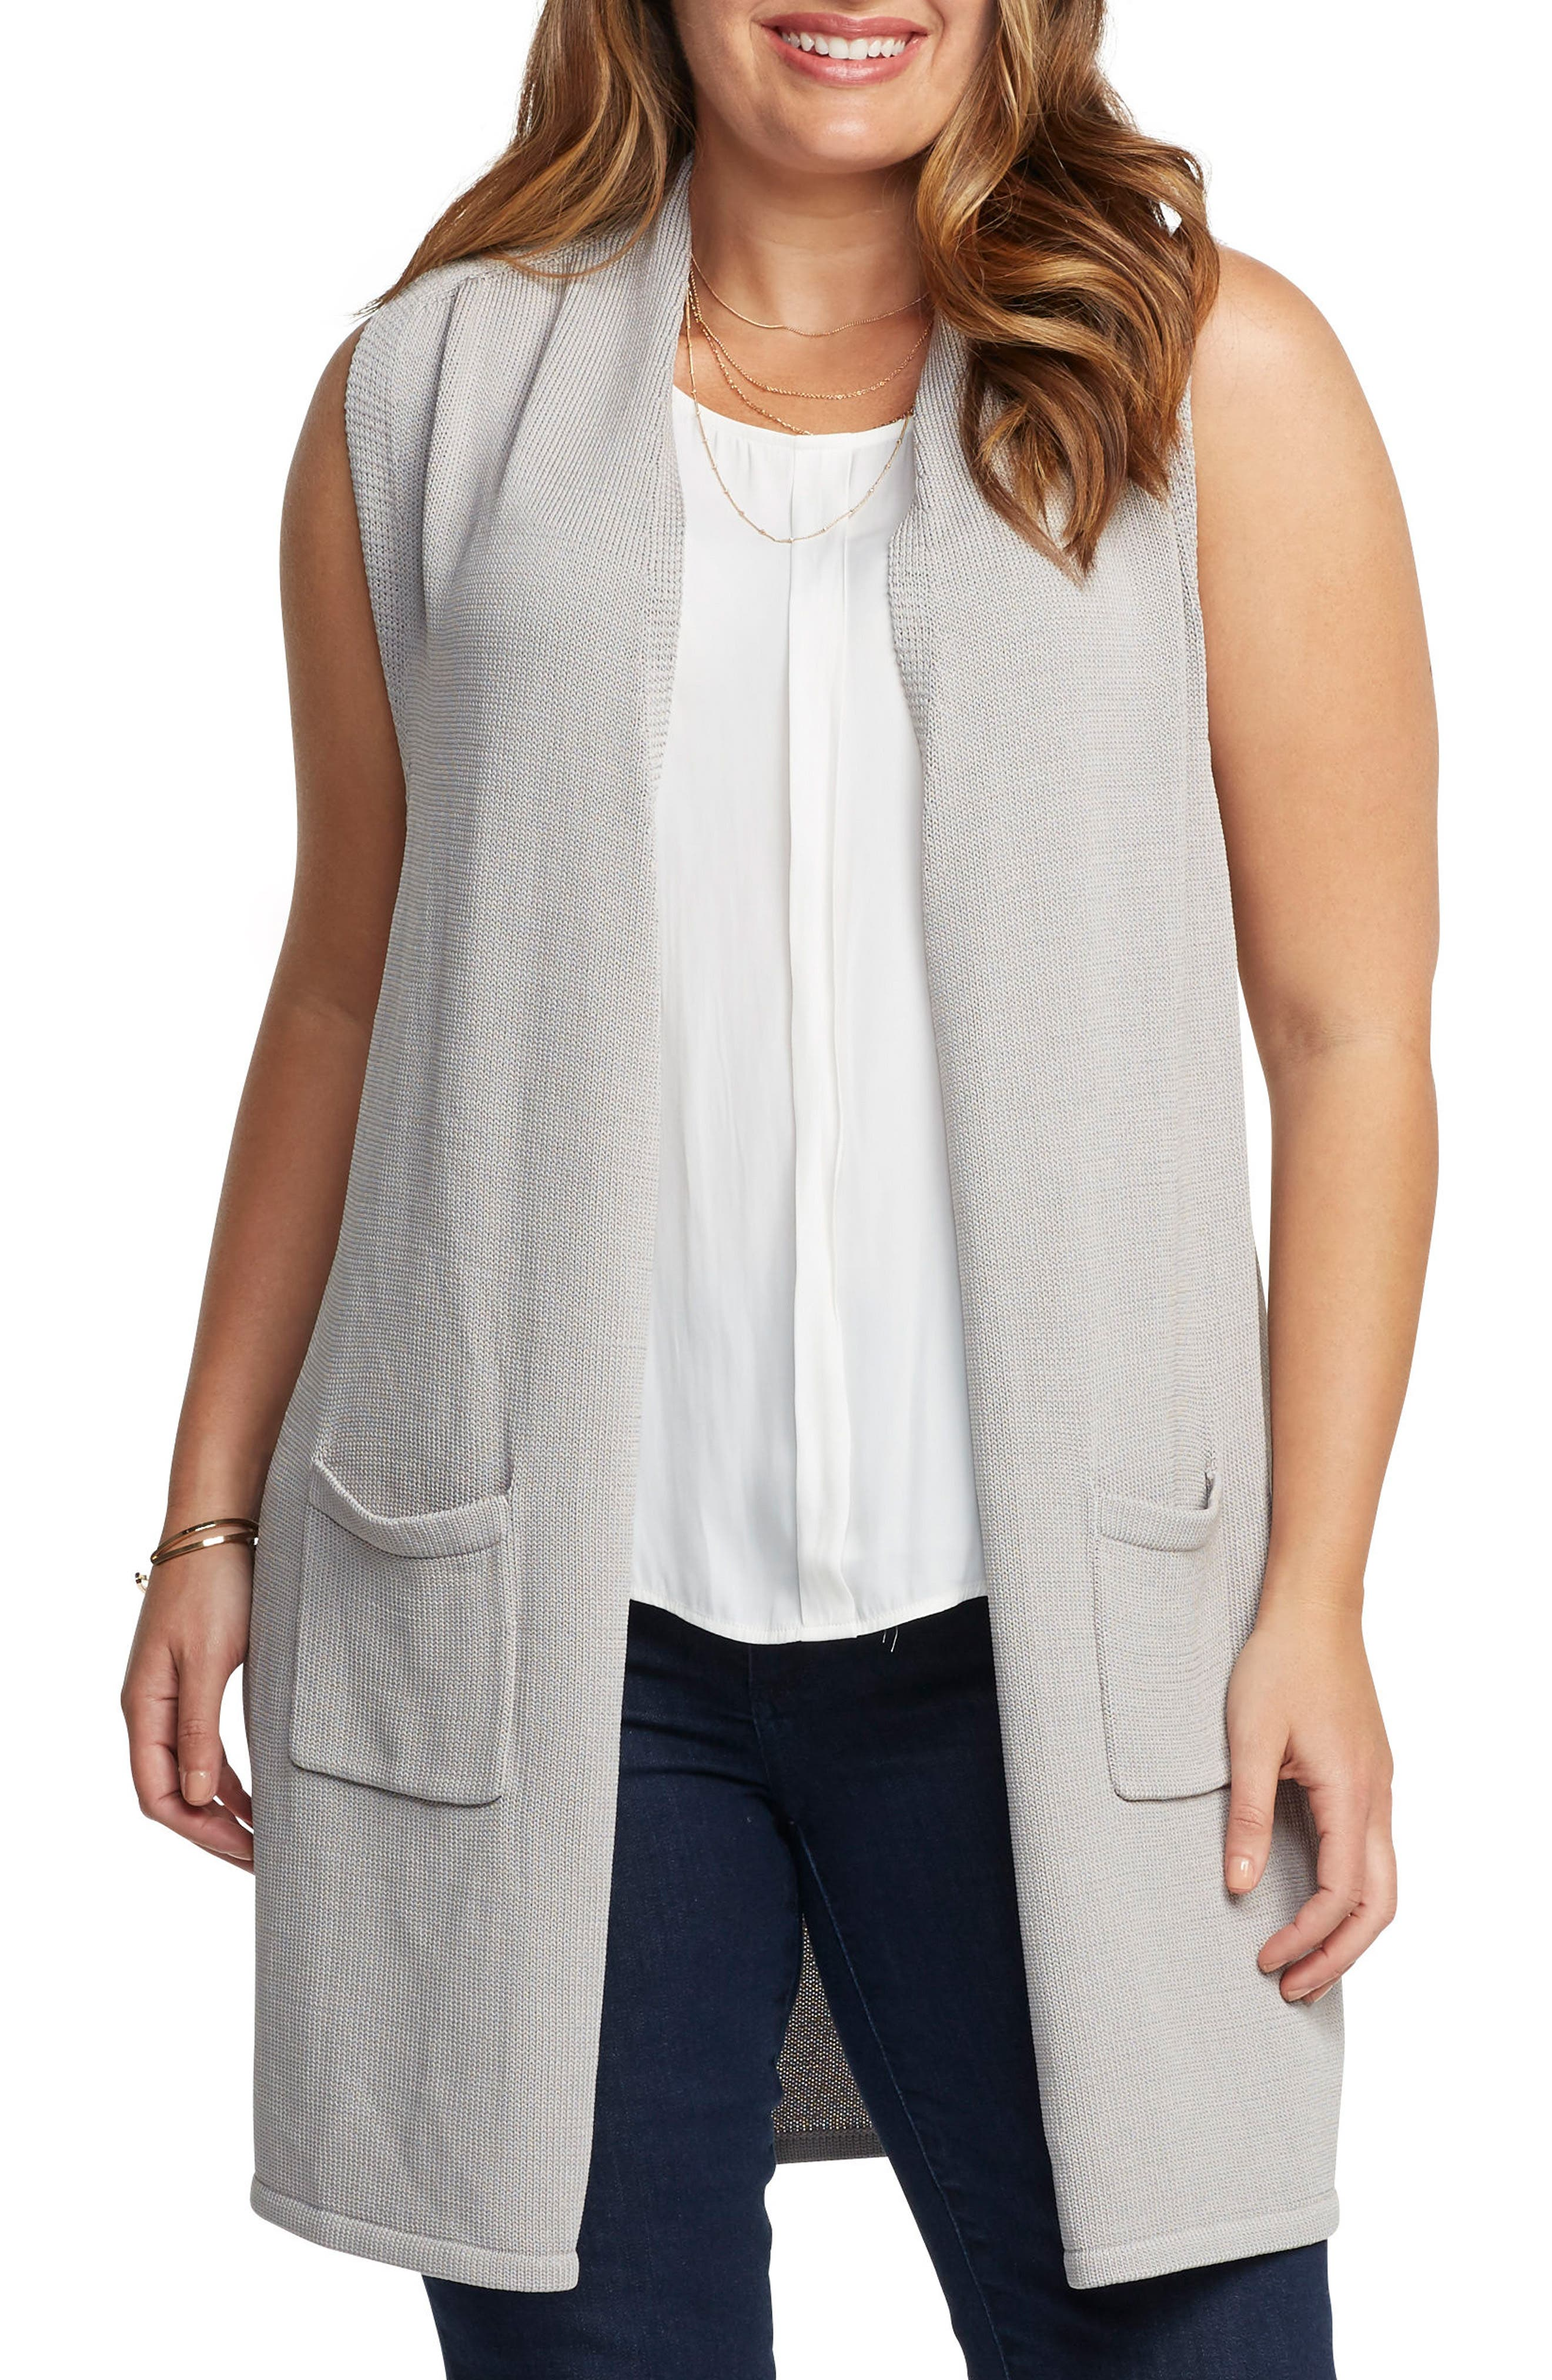 Alternate Image 1 Selected - Tart Holly Knit Open Front Vest (Plus Size)